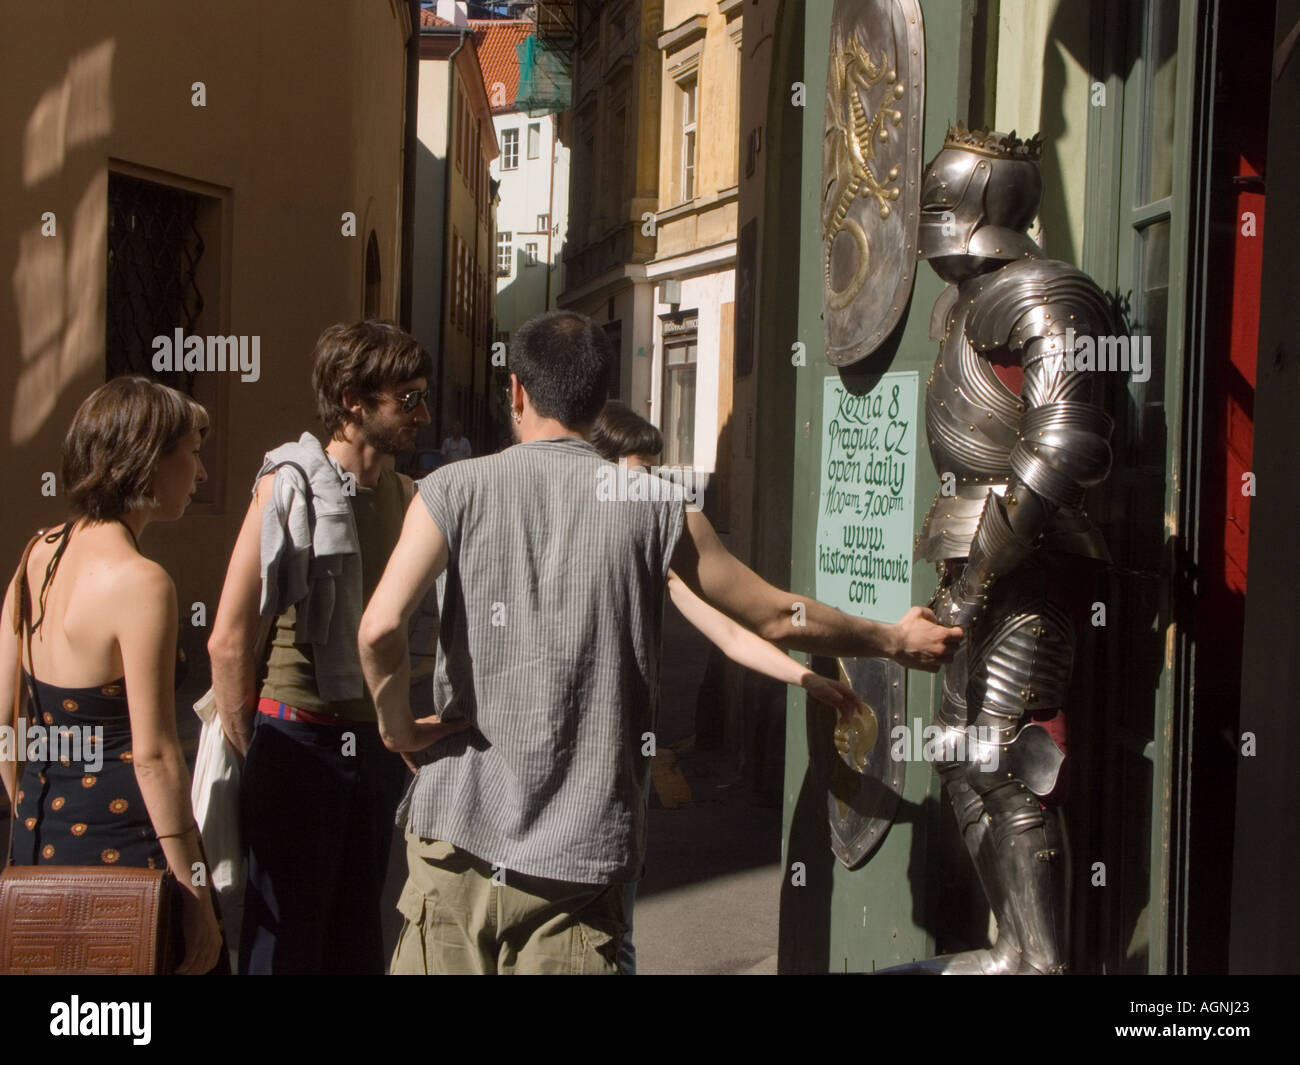 Admiring repro armour for sale in Prague - Stock Image